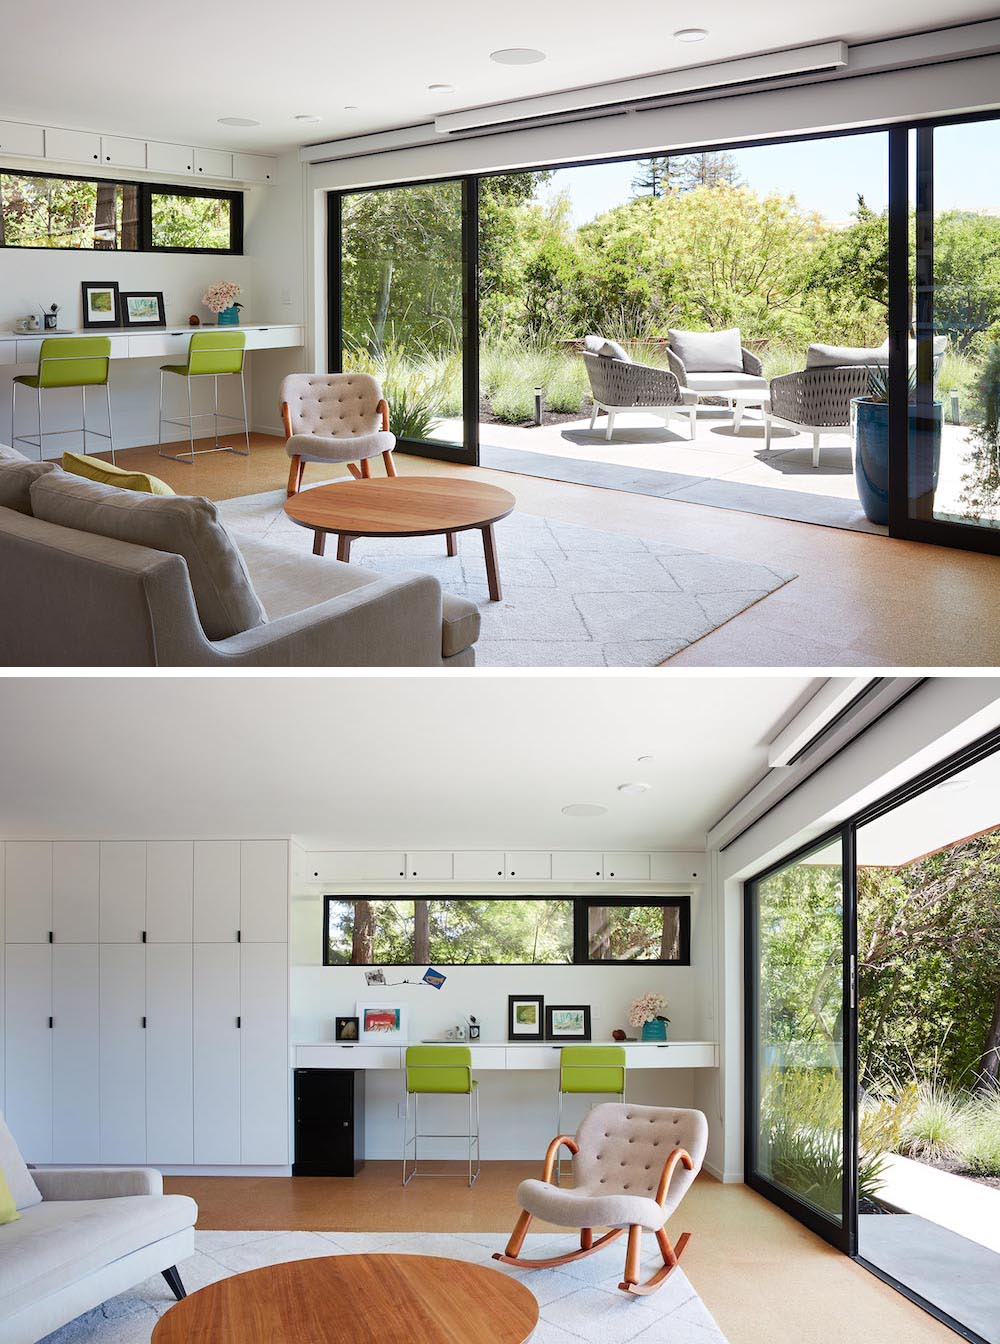 A modern family room with easy access to a new outdoor patio through floor to ceiling, full-width glass sliders.